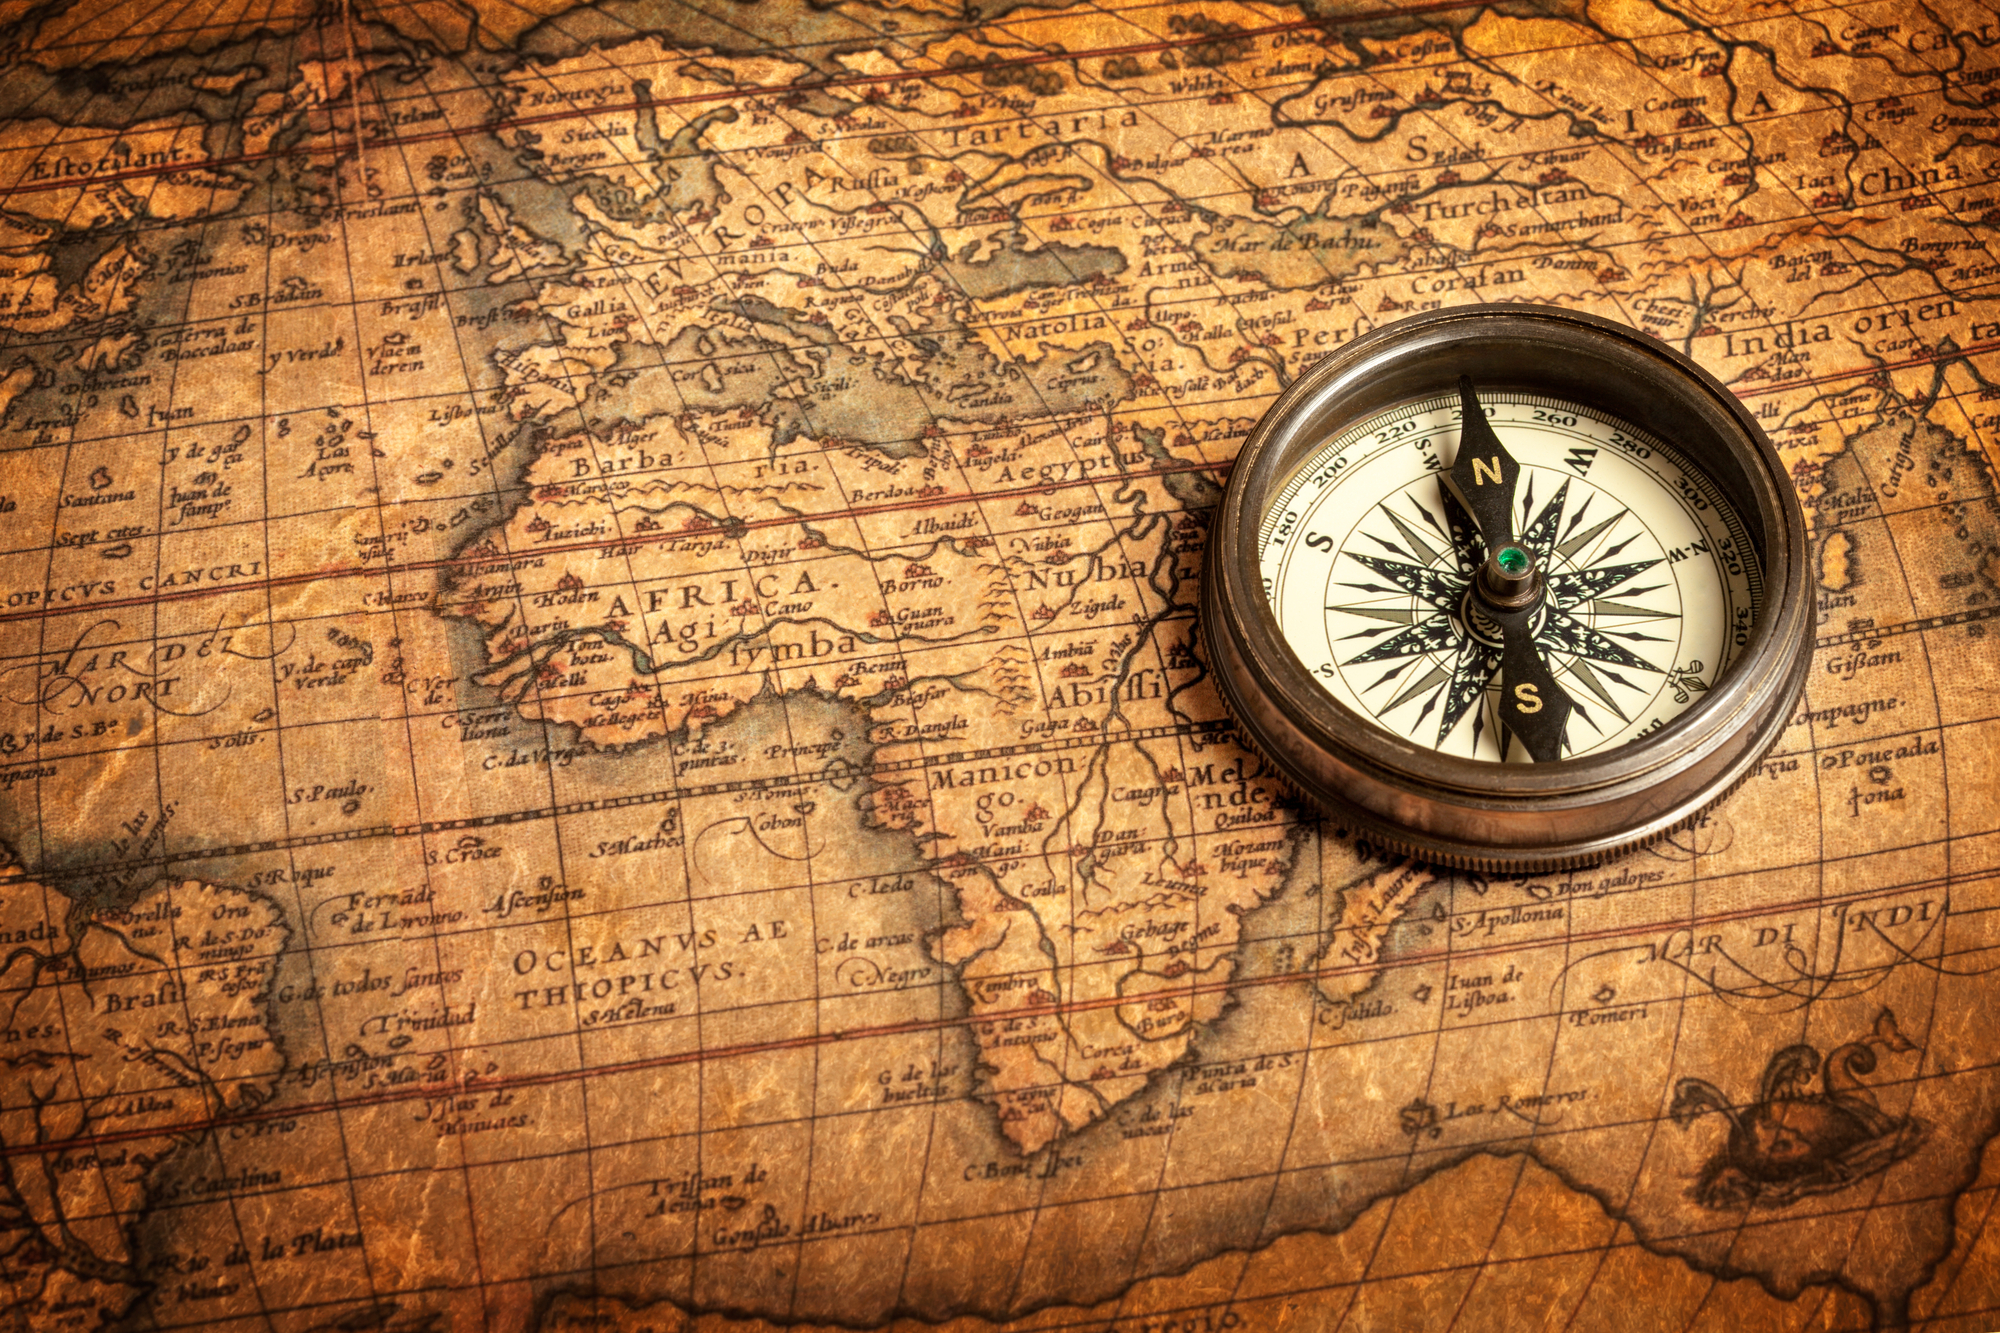 An antique compass rests on an old map of countries on planet Earth